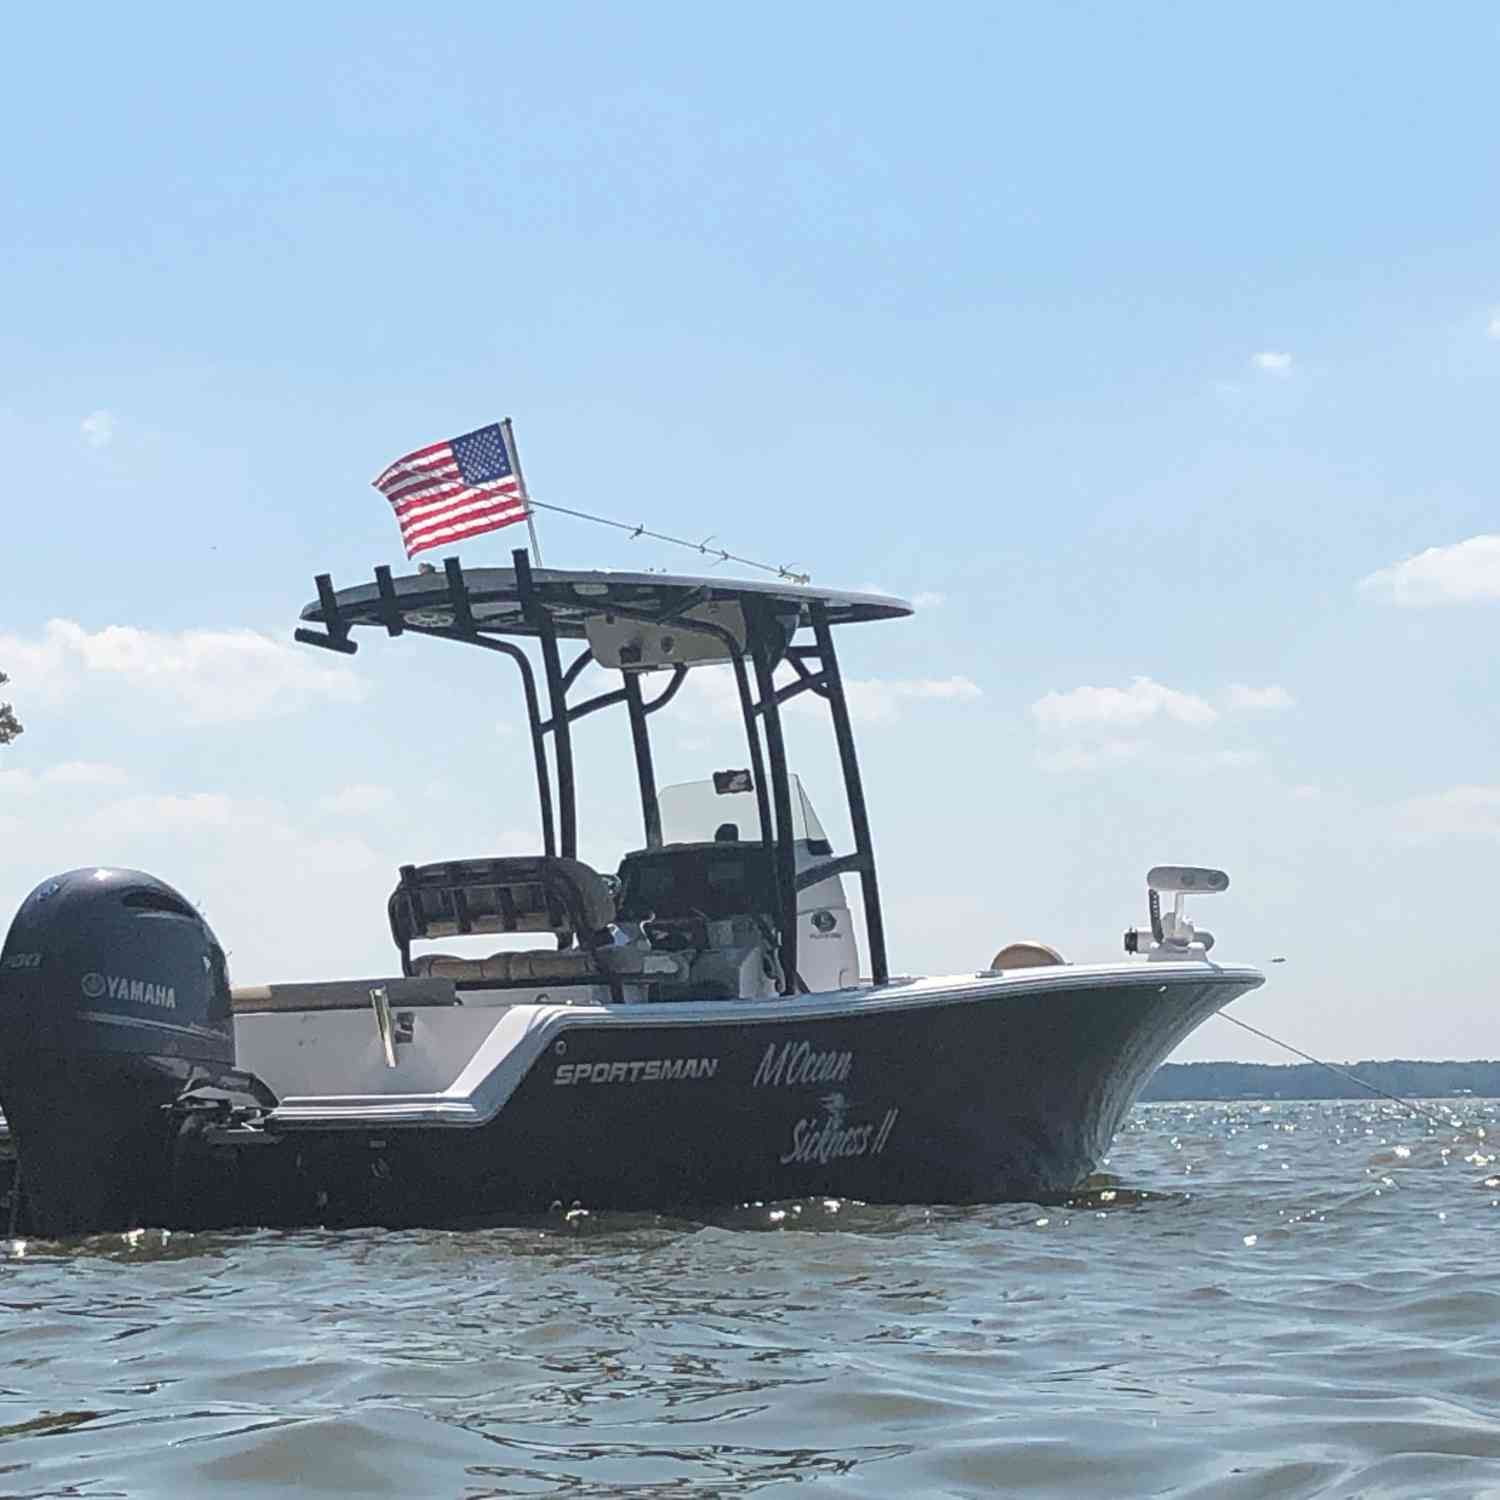 Title: Chillin' on Memorial Day - On board their Sportsman Open 212 Center Console - Location: Lake Murray, SC. Participating in the Photo Contest #SportsmanJune2019